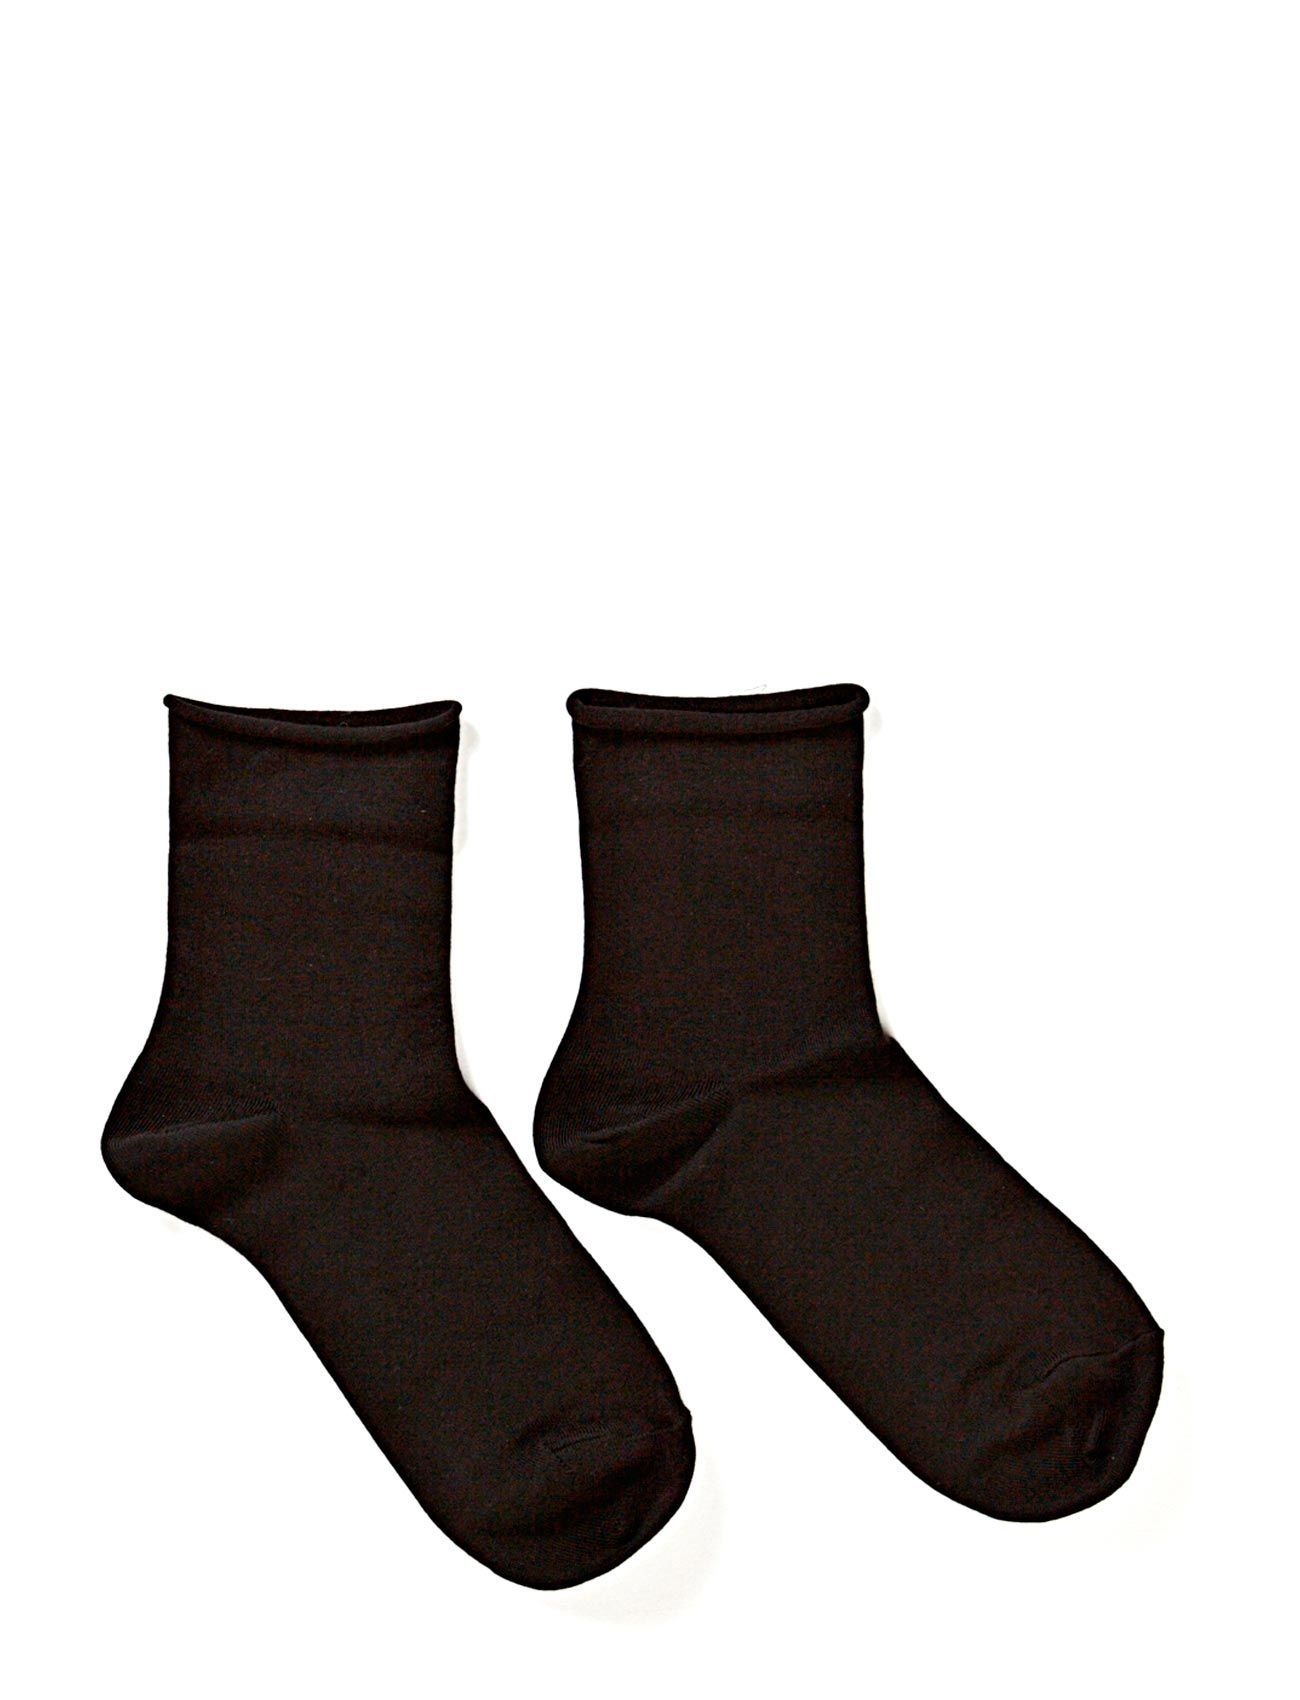 Ladies Anklesock, Cotton Comfort Socks